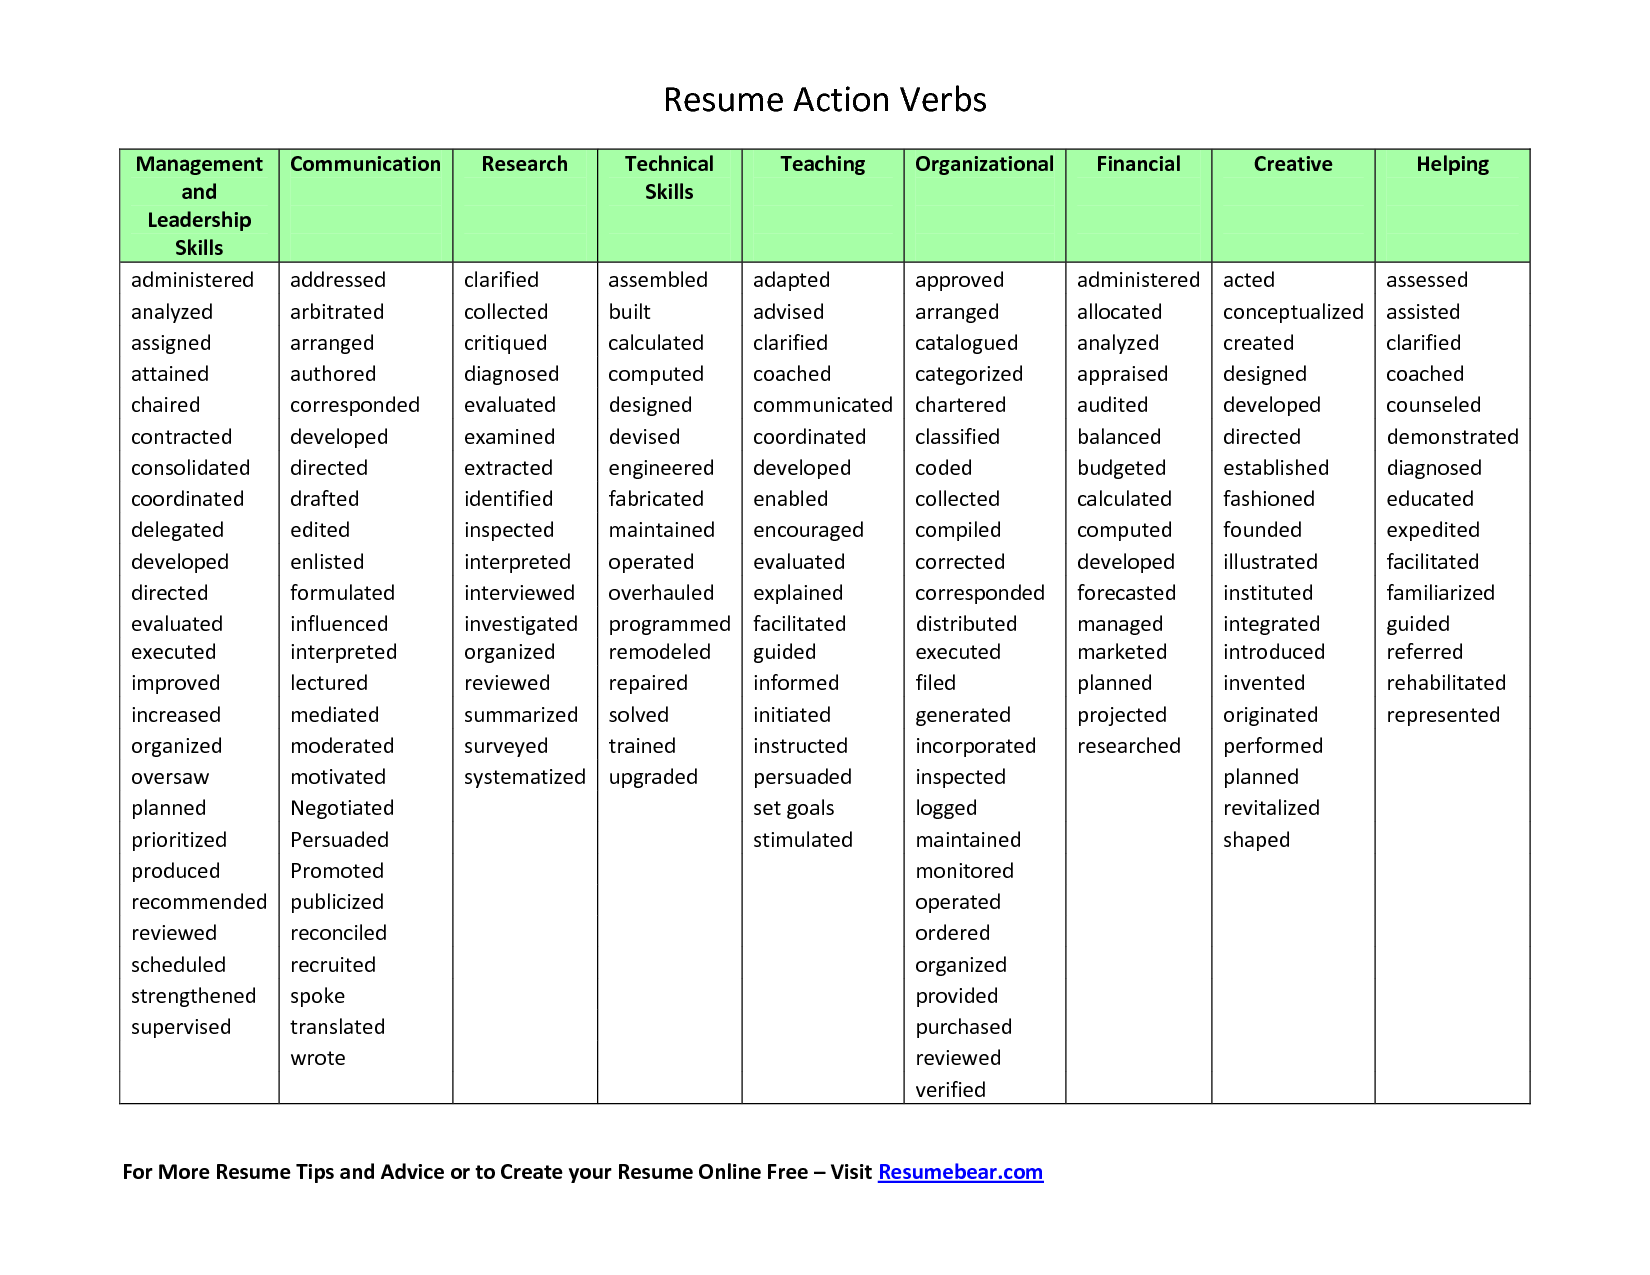 action verbs for resumes and cover letters Parlobuenacocinaco